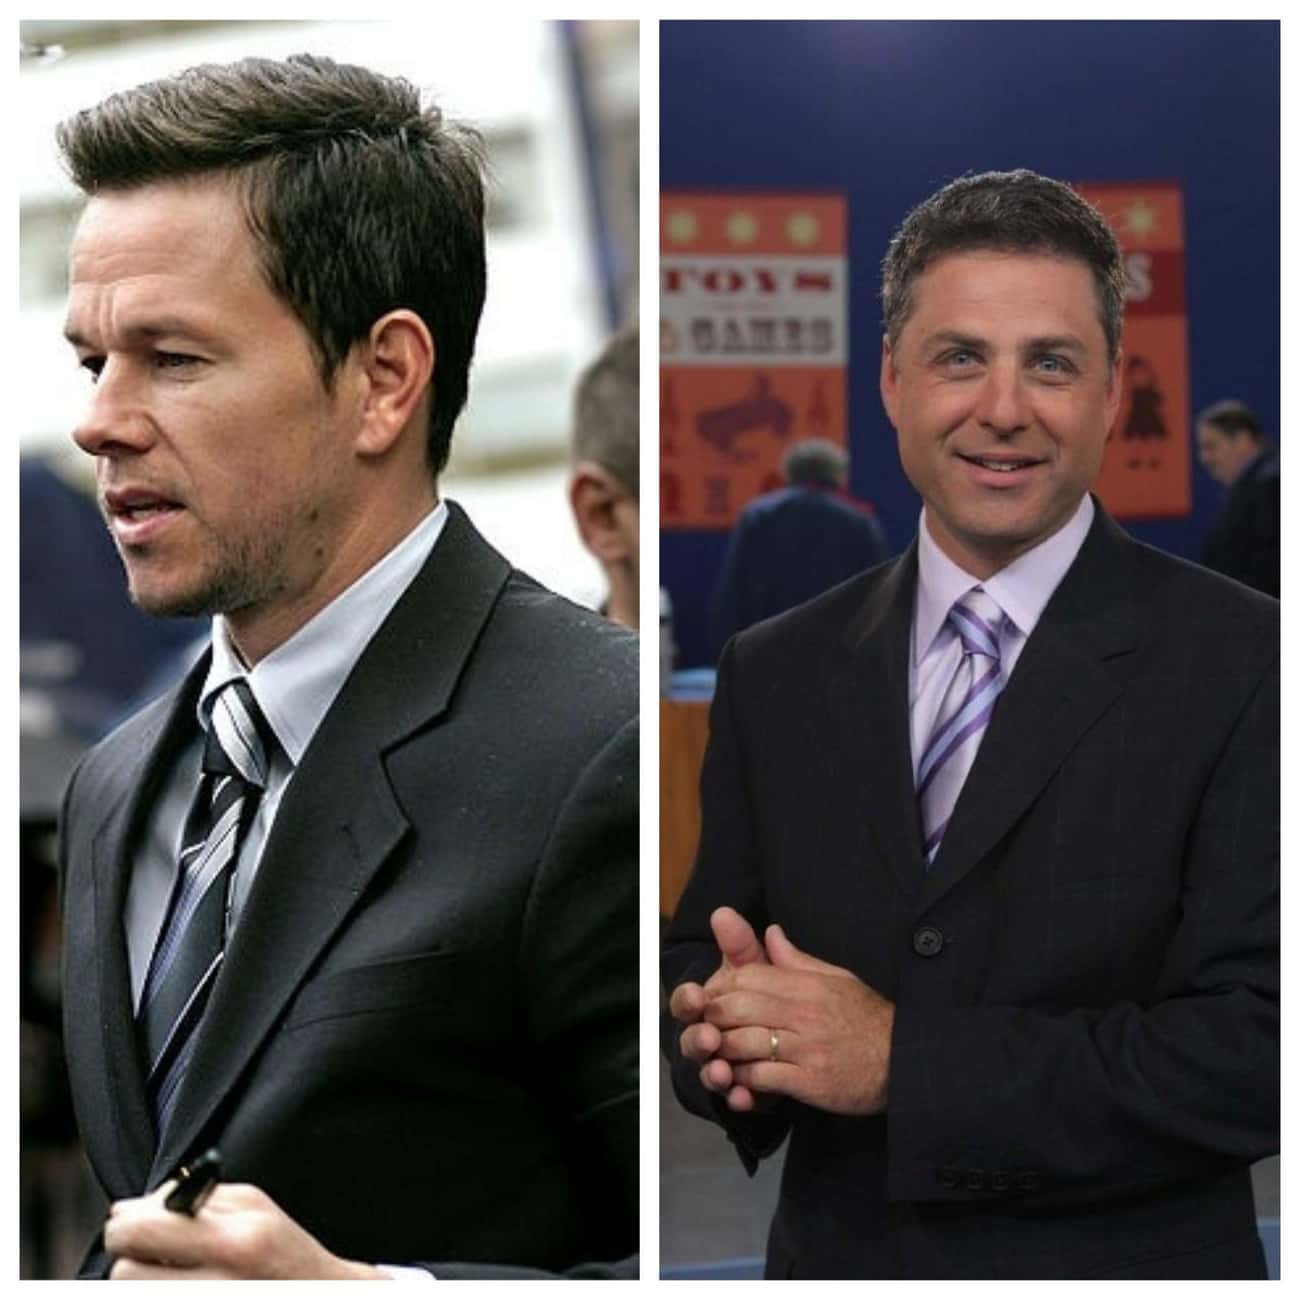 Mark Wahlberg & Mark L. Walber is listed (or ranked) 3 on the list Famous People with the Same Real Name